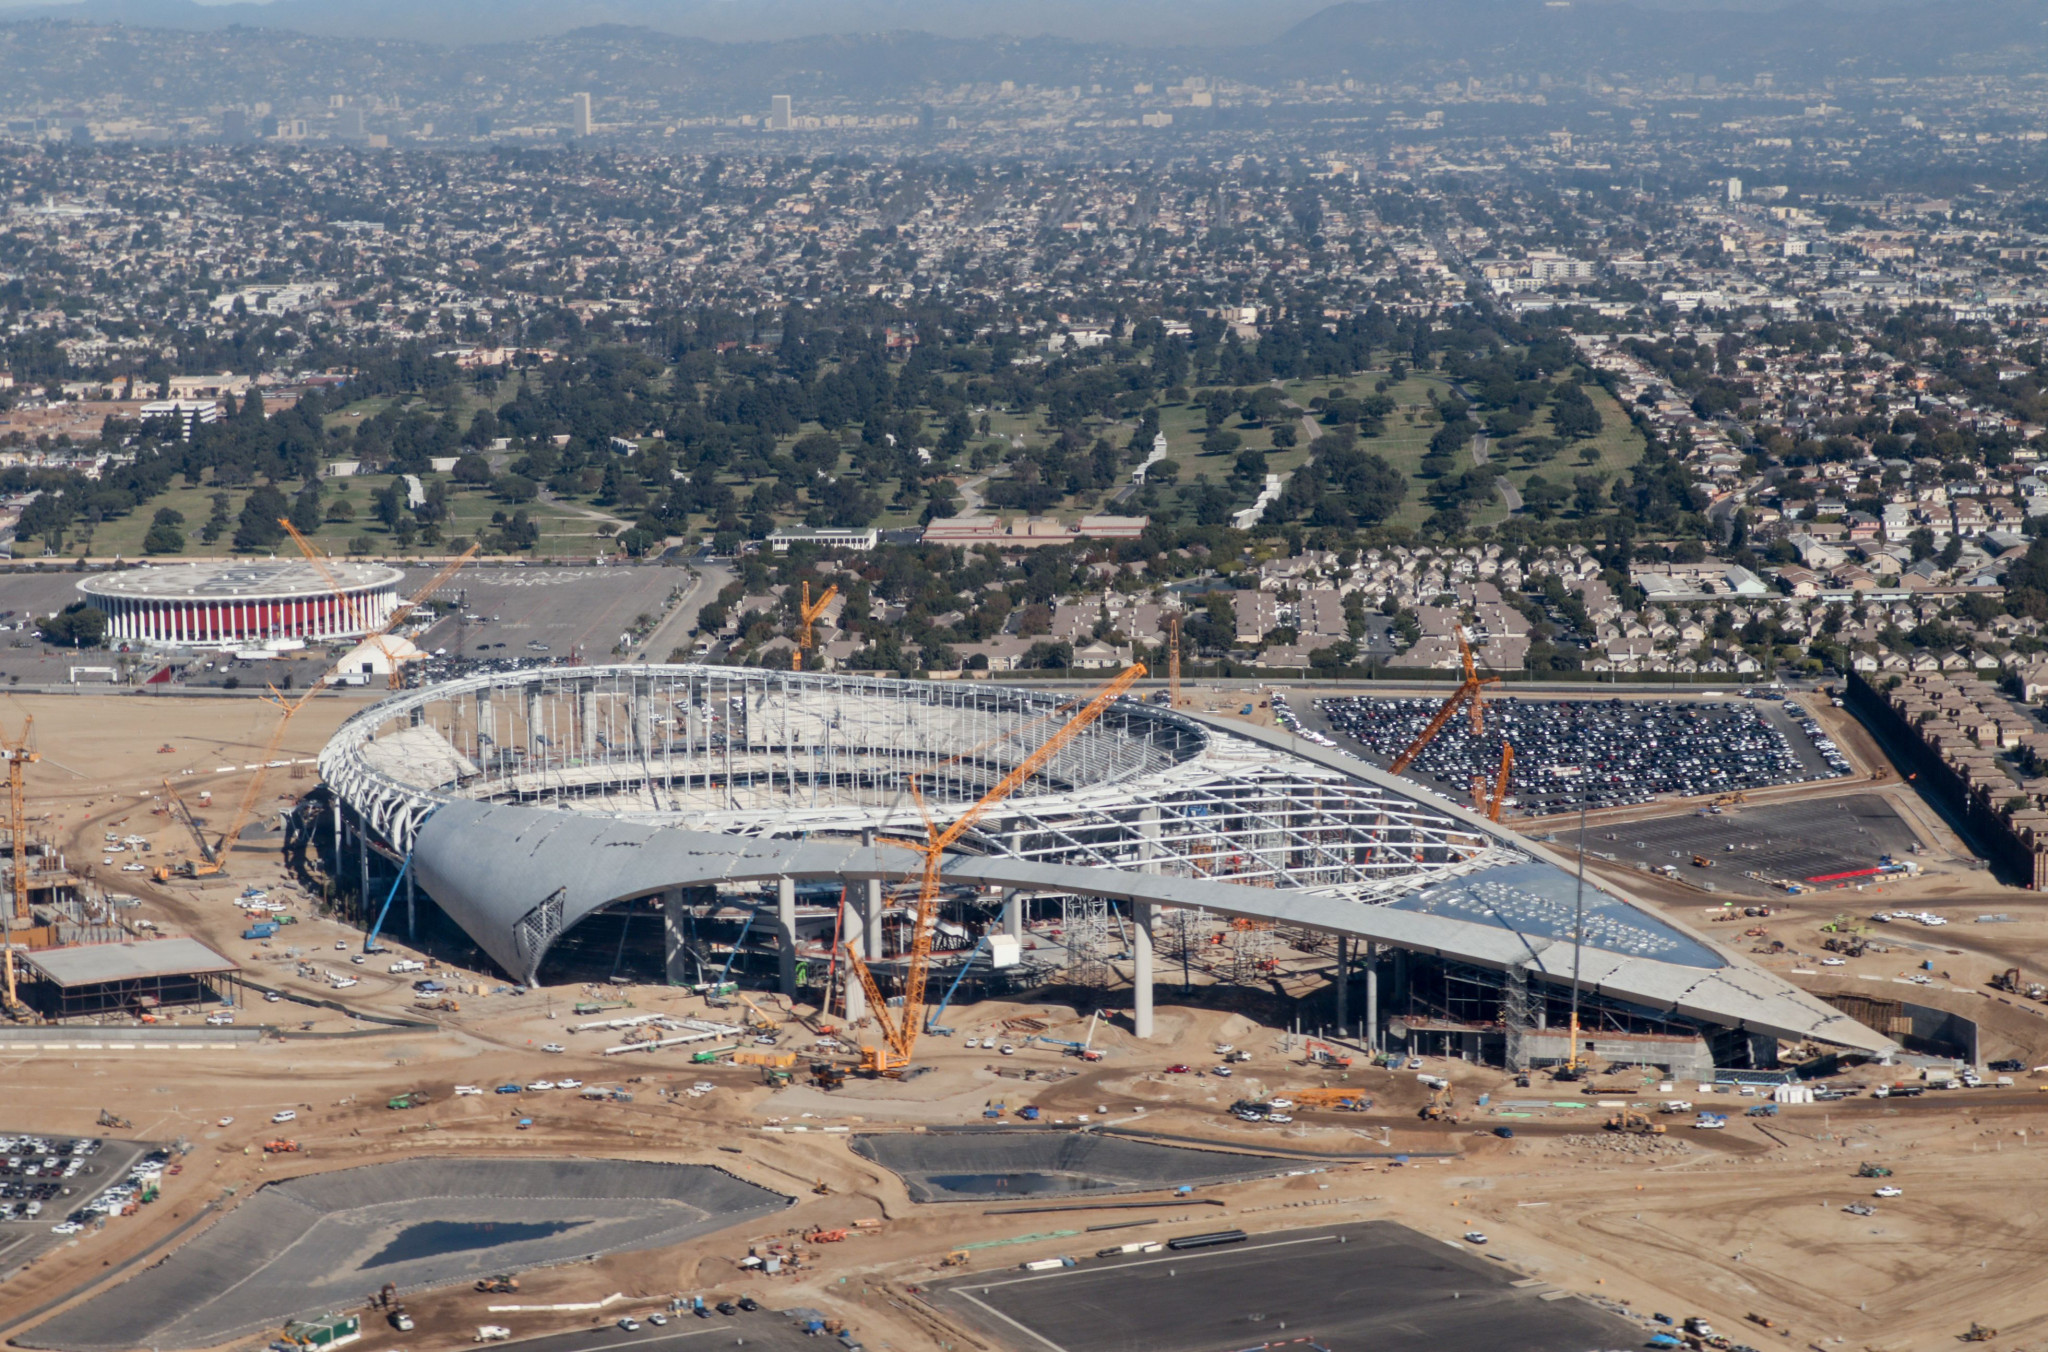 Los Angeles 2028 Opening and Closing Ceremony stadium rated at 85 per cent complete